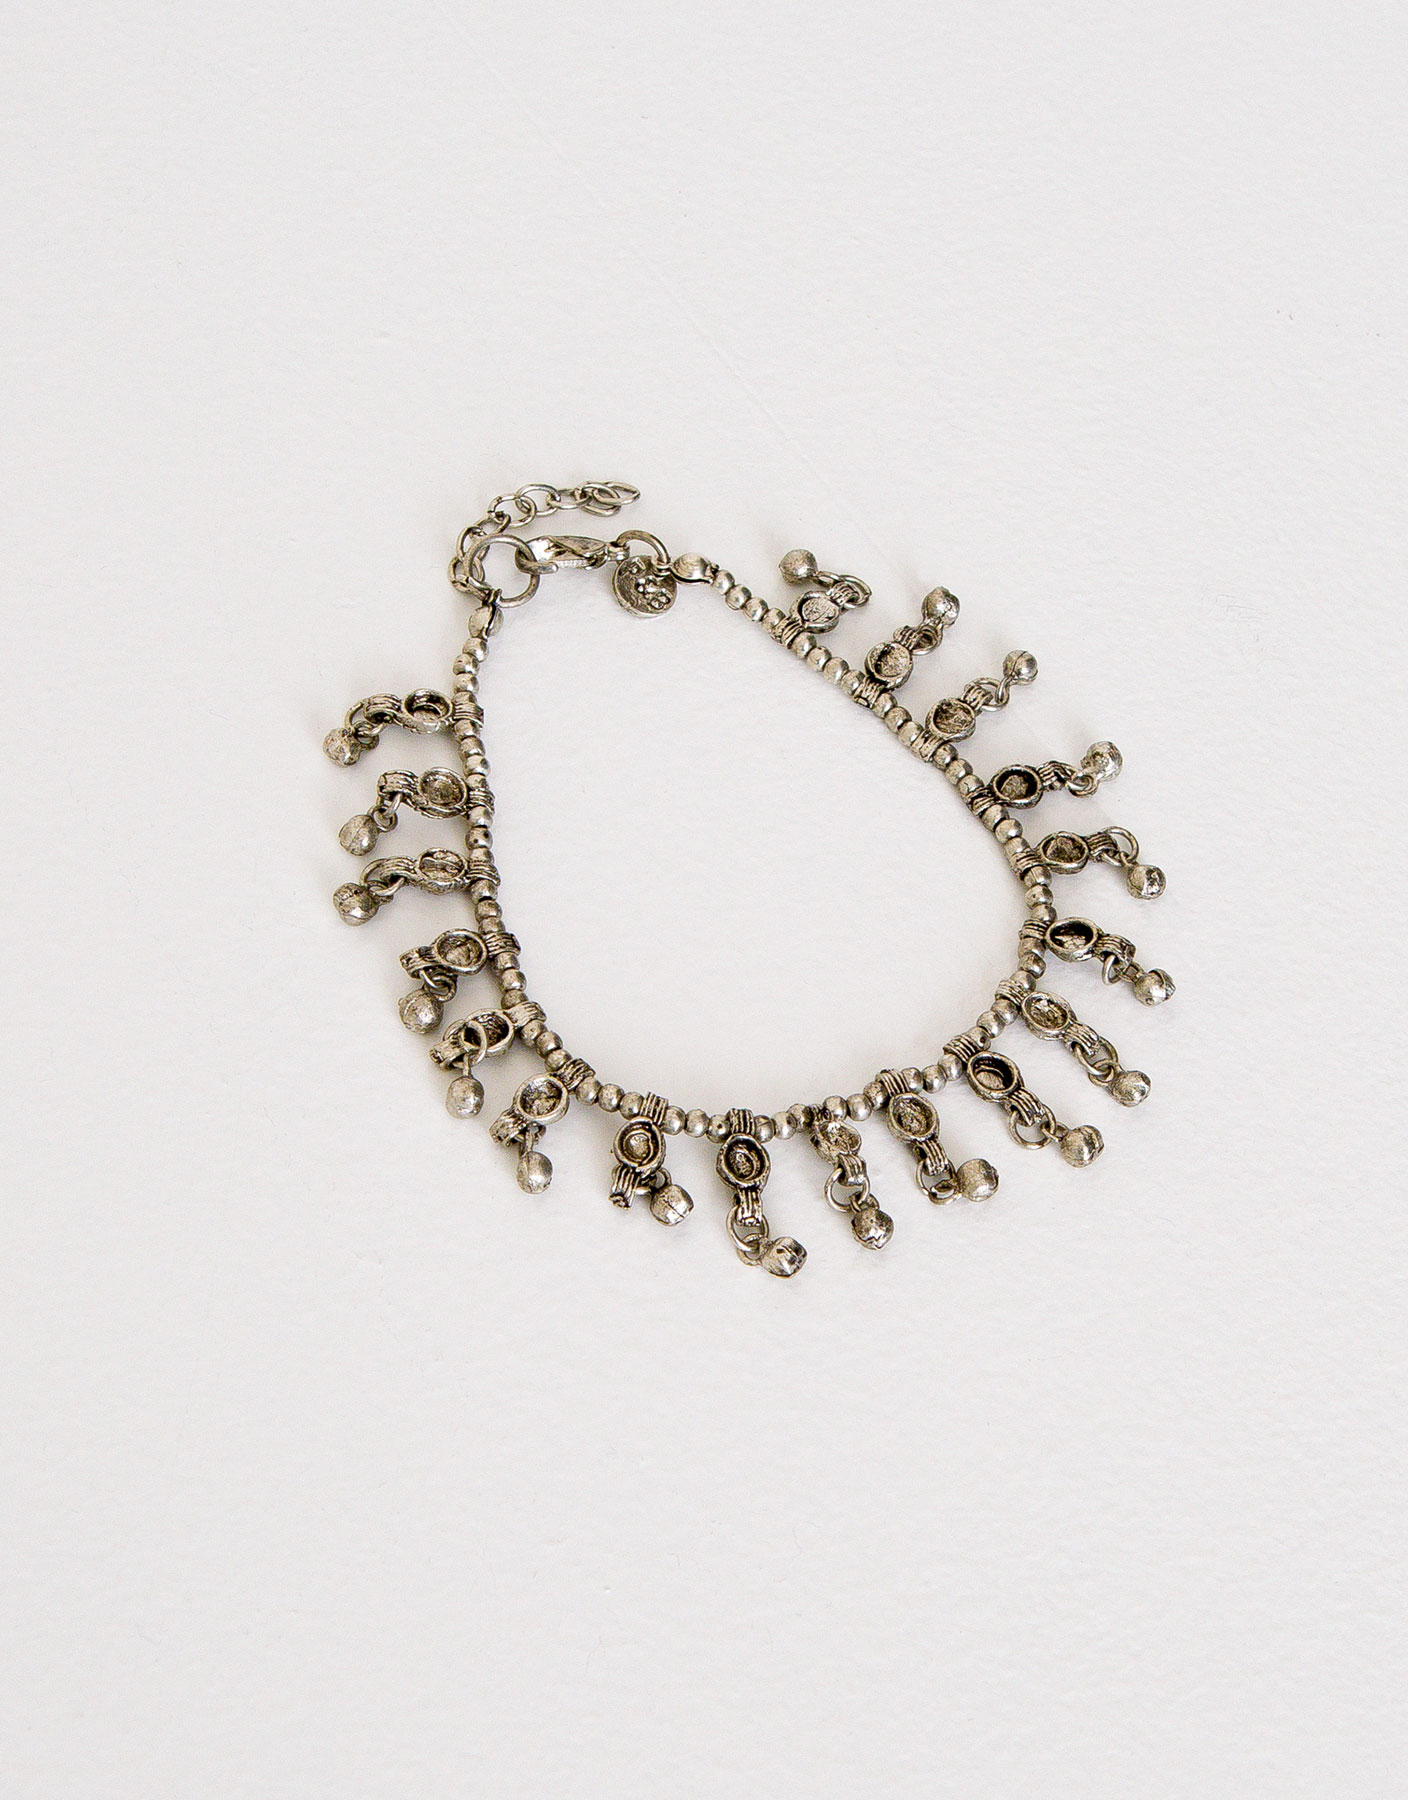 Antique-effect anklet